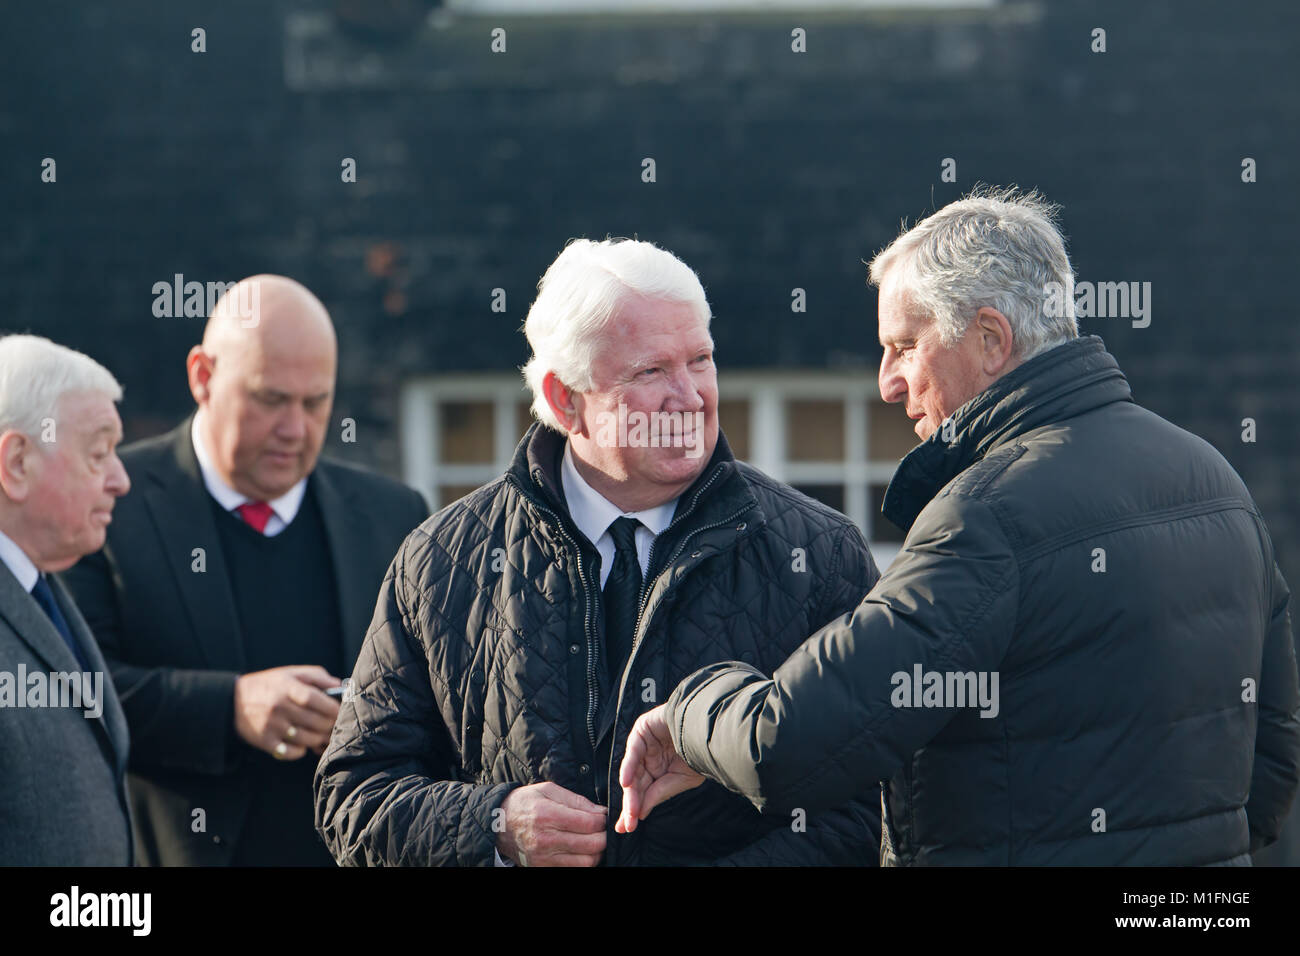 Warrington, Liverpool, UK. 30th Jan, 2018. Ex Liverpool player's Chris Lawler, Ray Clemence and Ian Callaghan - Stock Image